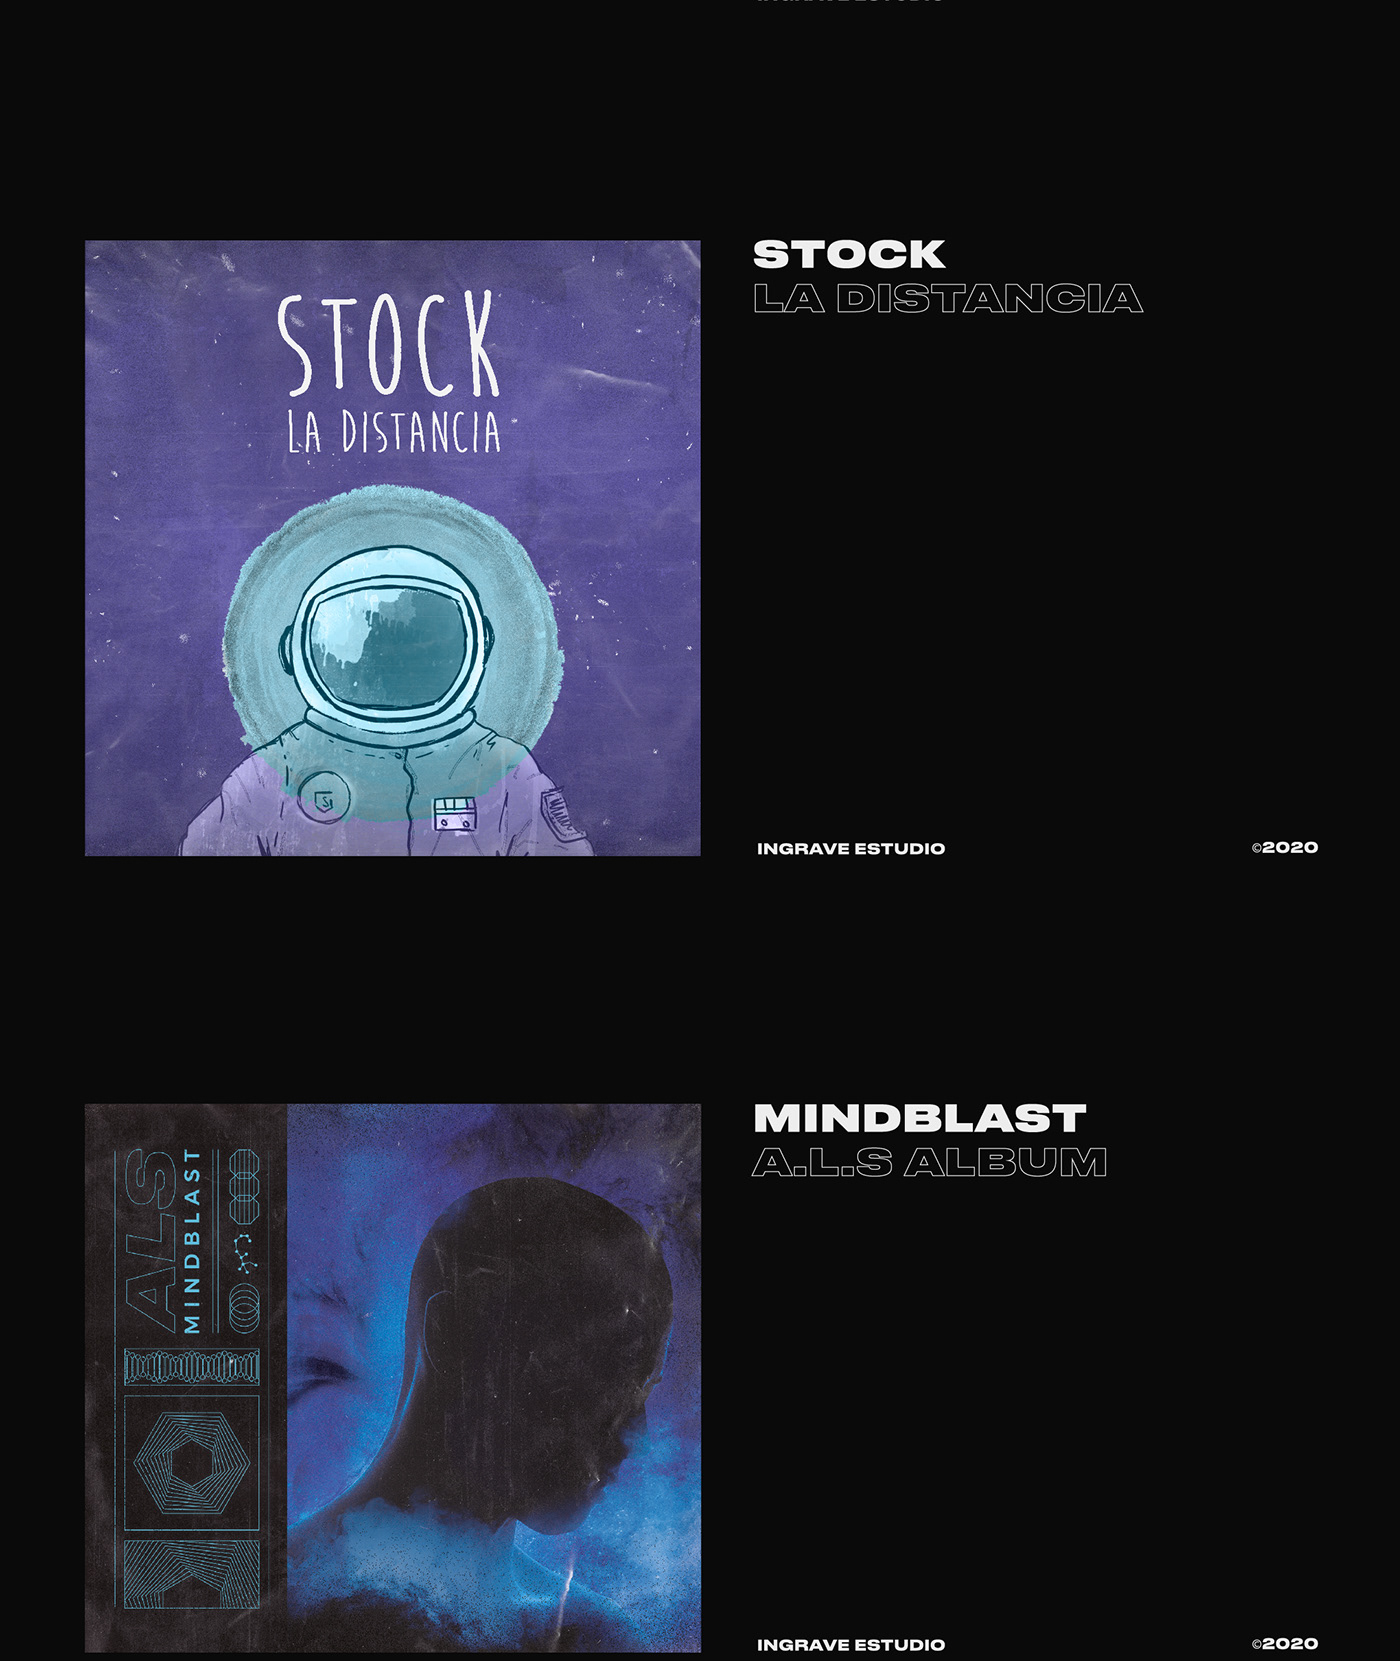 CD cover featuring music musica Single spotify